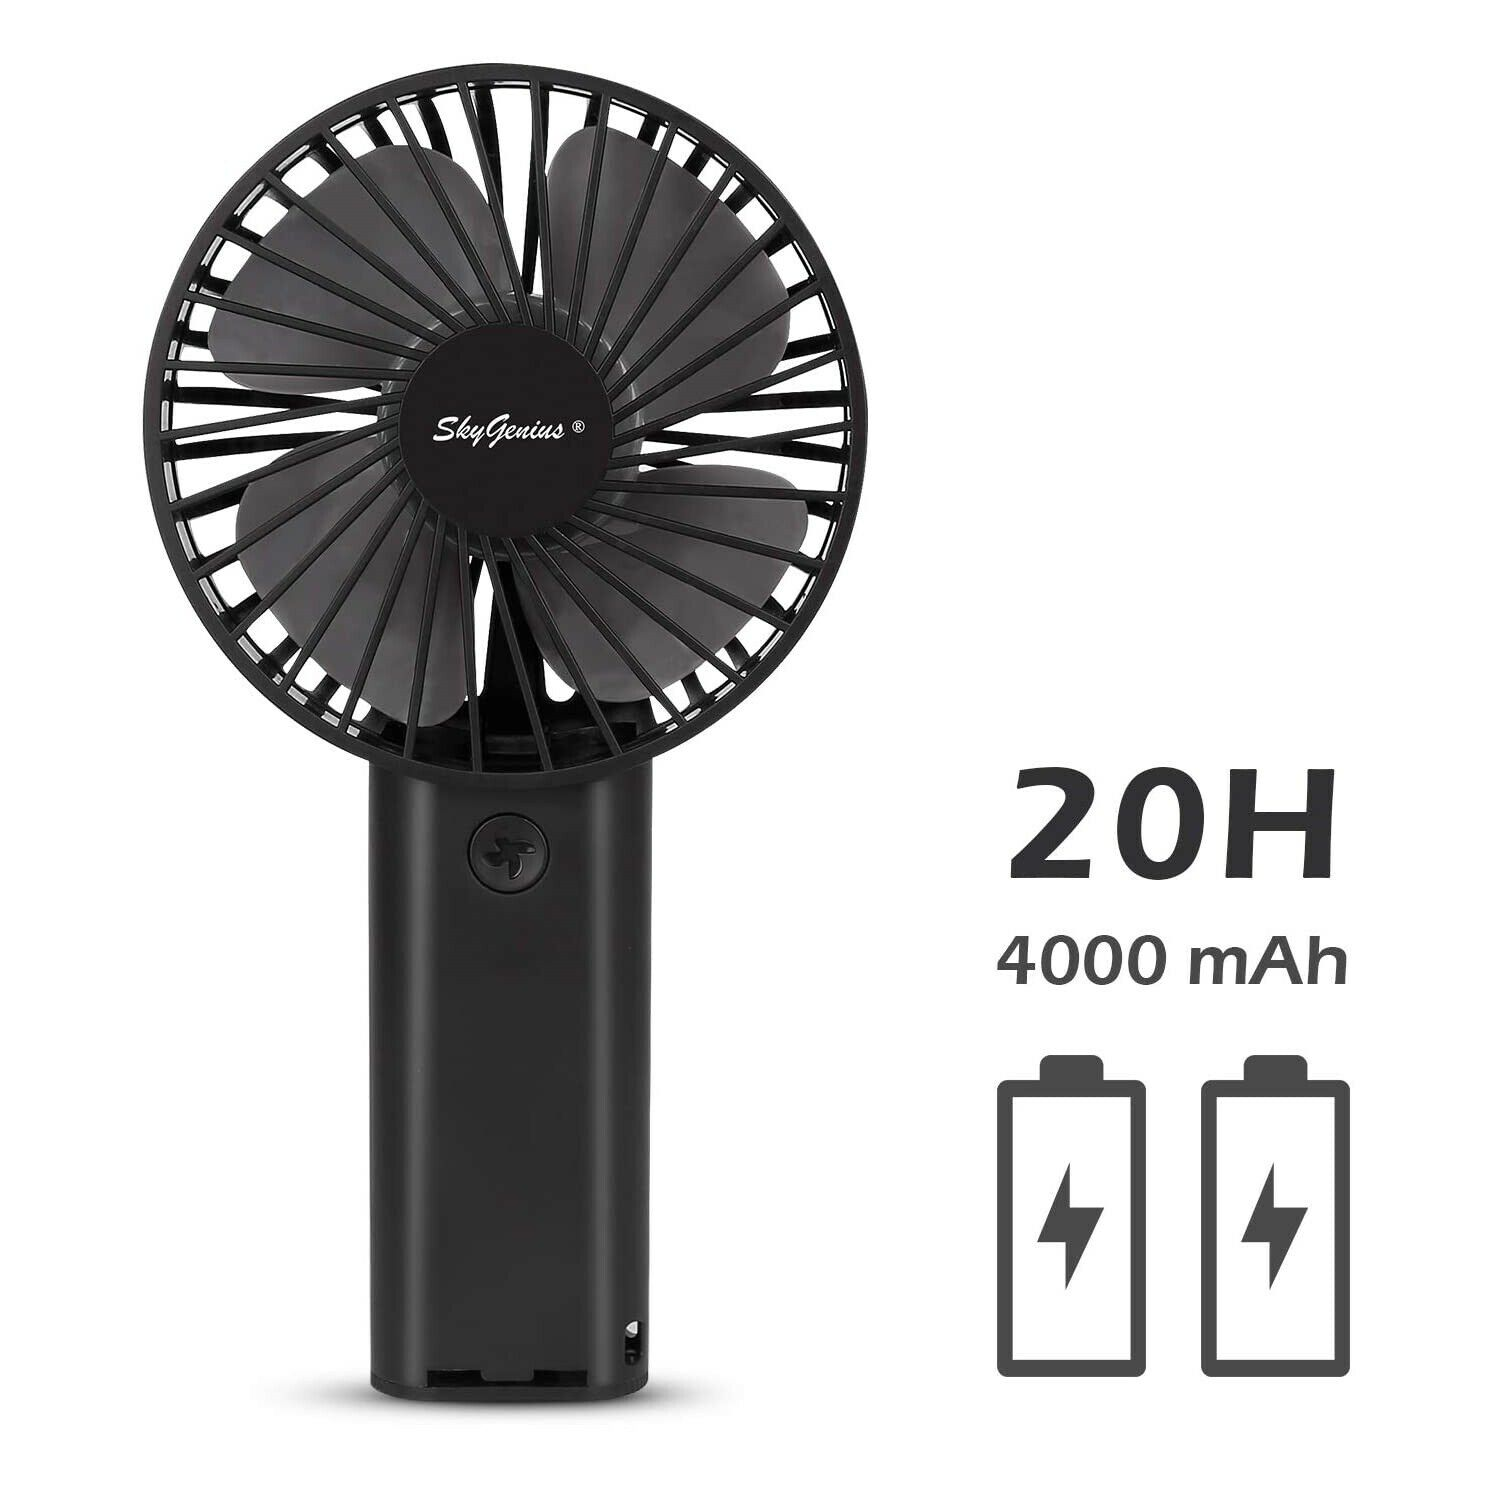 Black ZhiXu Mini Handheld Fan Portable Fan,USB 4000mAh Battery Operated Rechargeble Hand Held Fan,8-18 Working Hours with 3 Speed Adjustable for Home Office Traveling